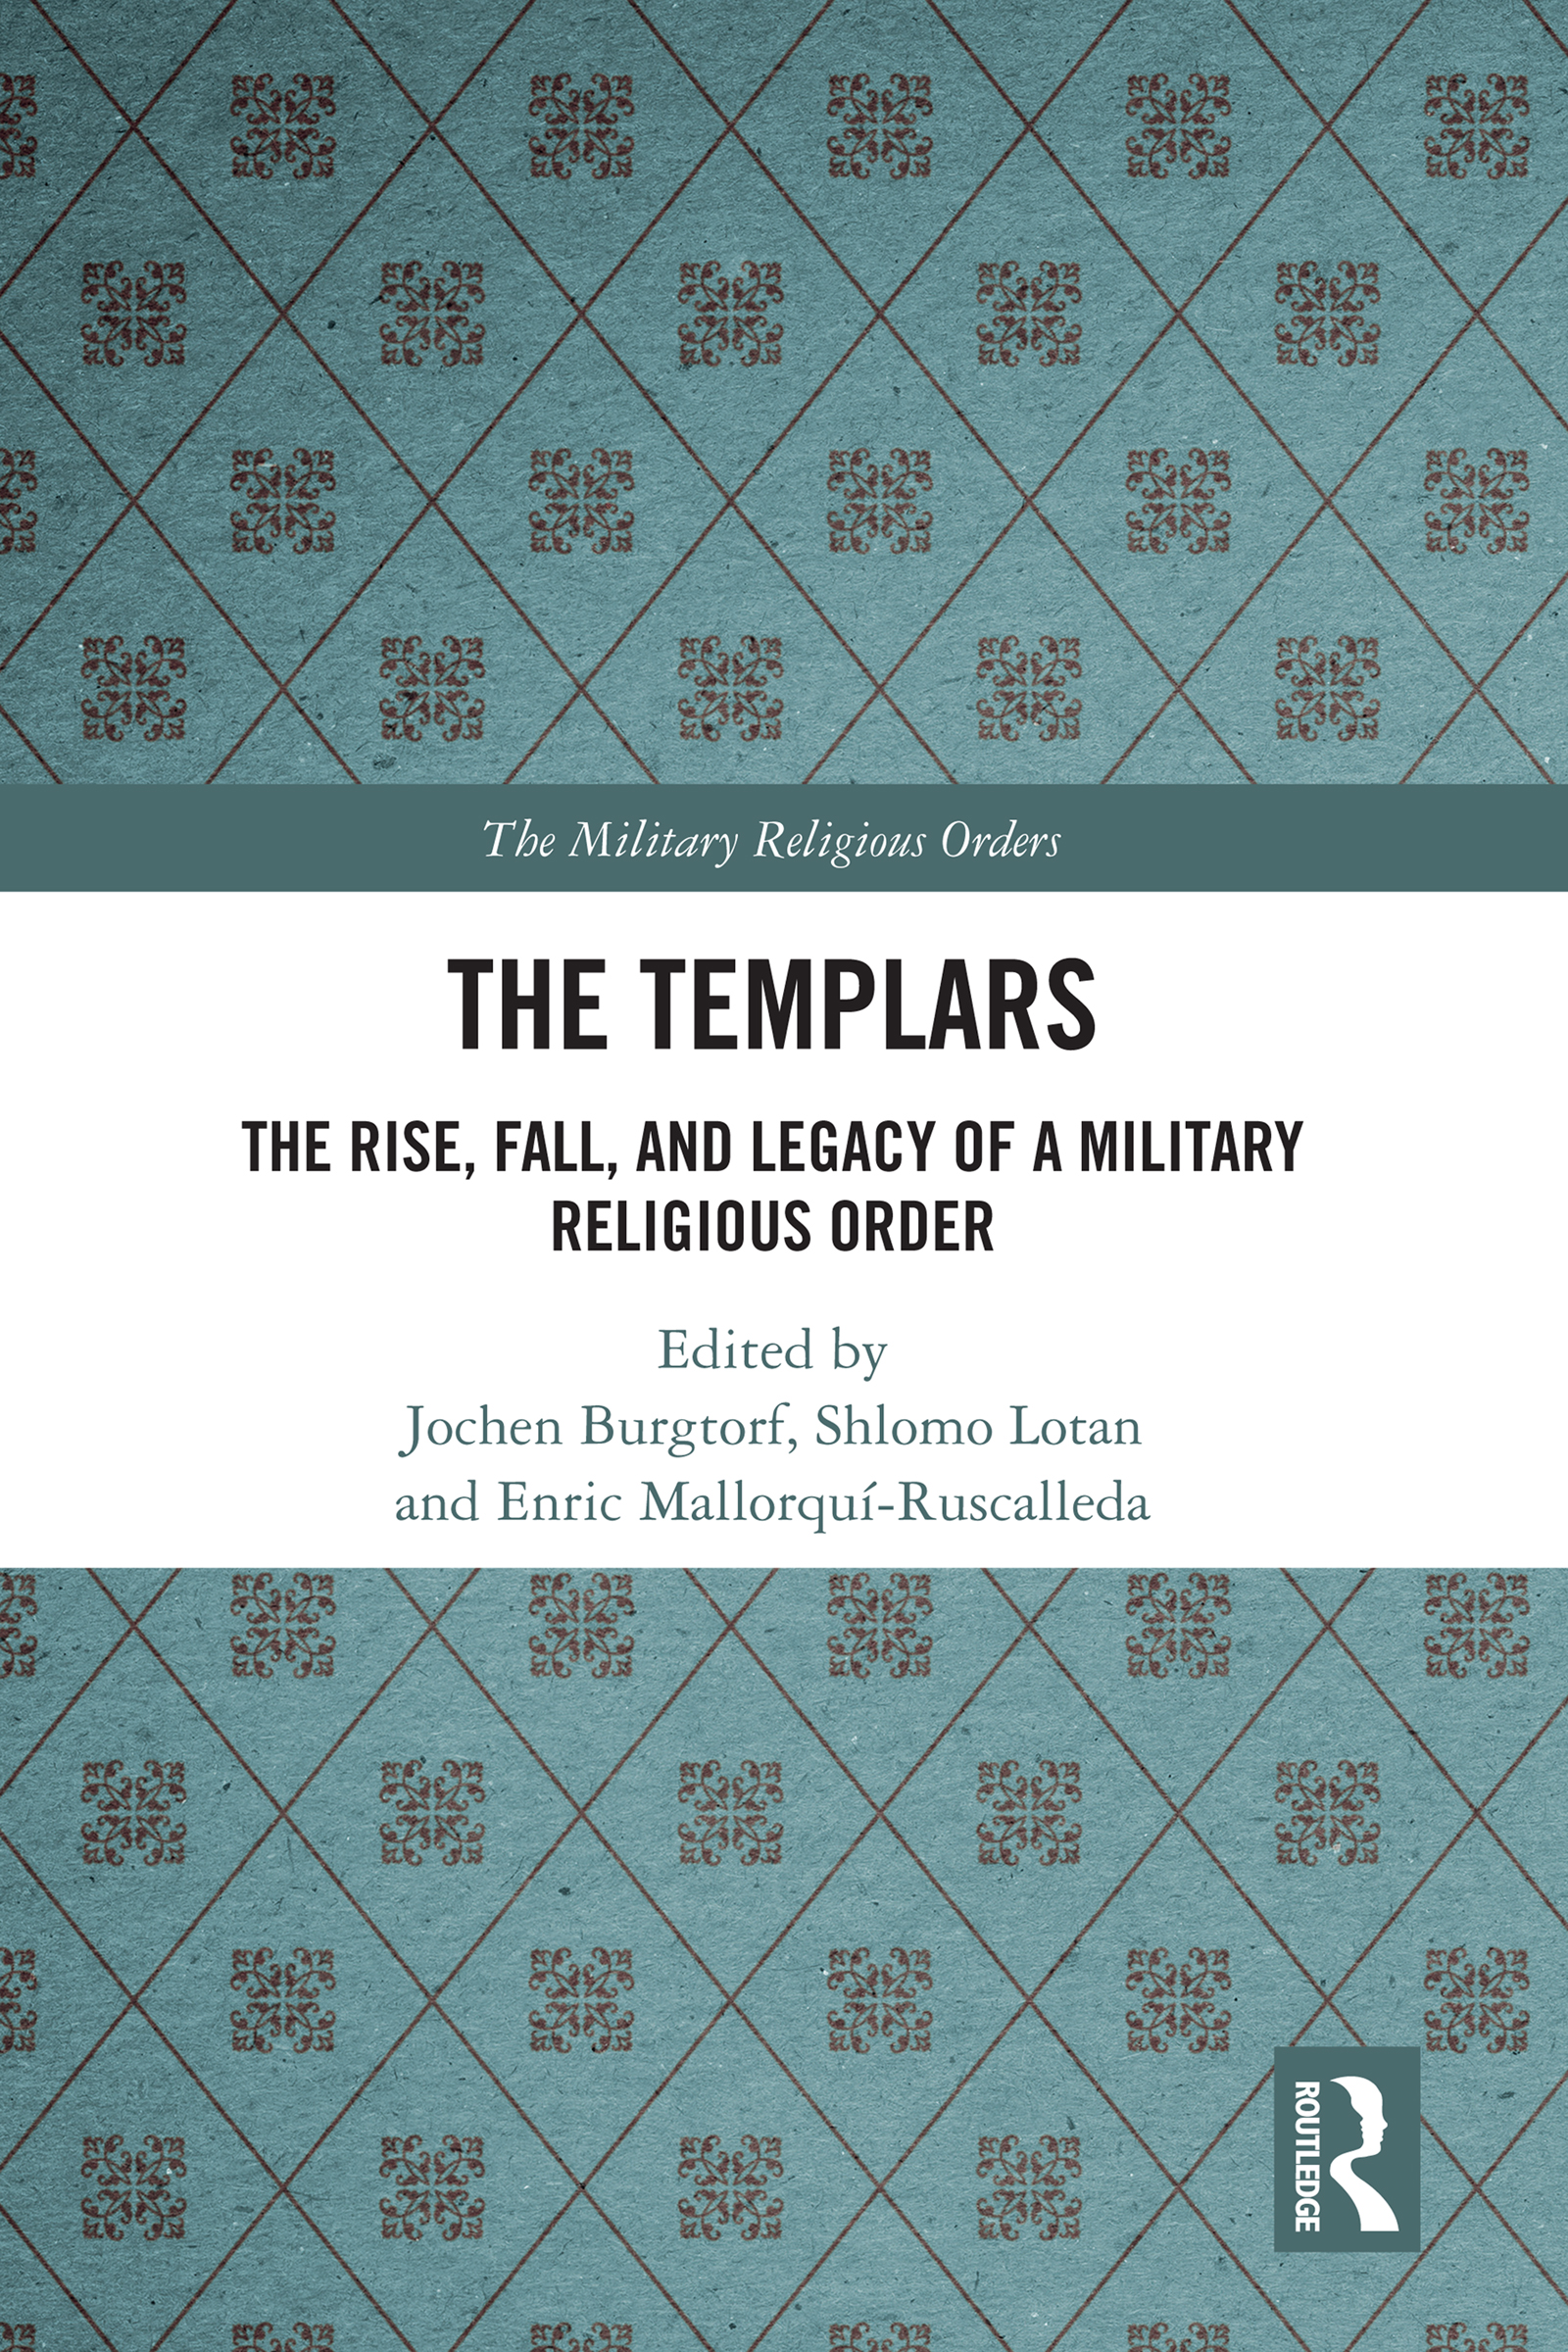 The Templars' Land Acquisition Policy in the Crusader Kingdom of Jerusalem, c. 1130–1187